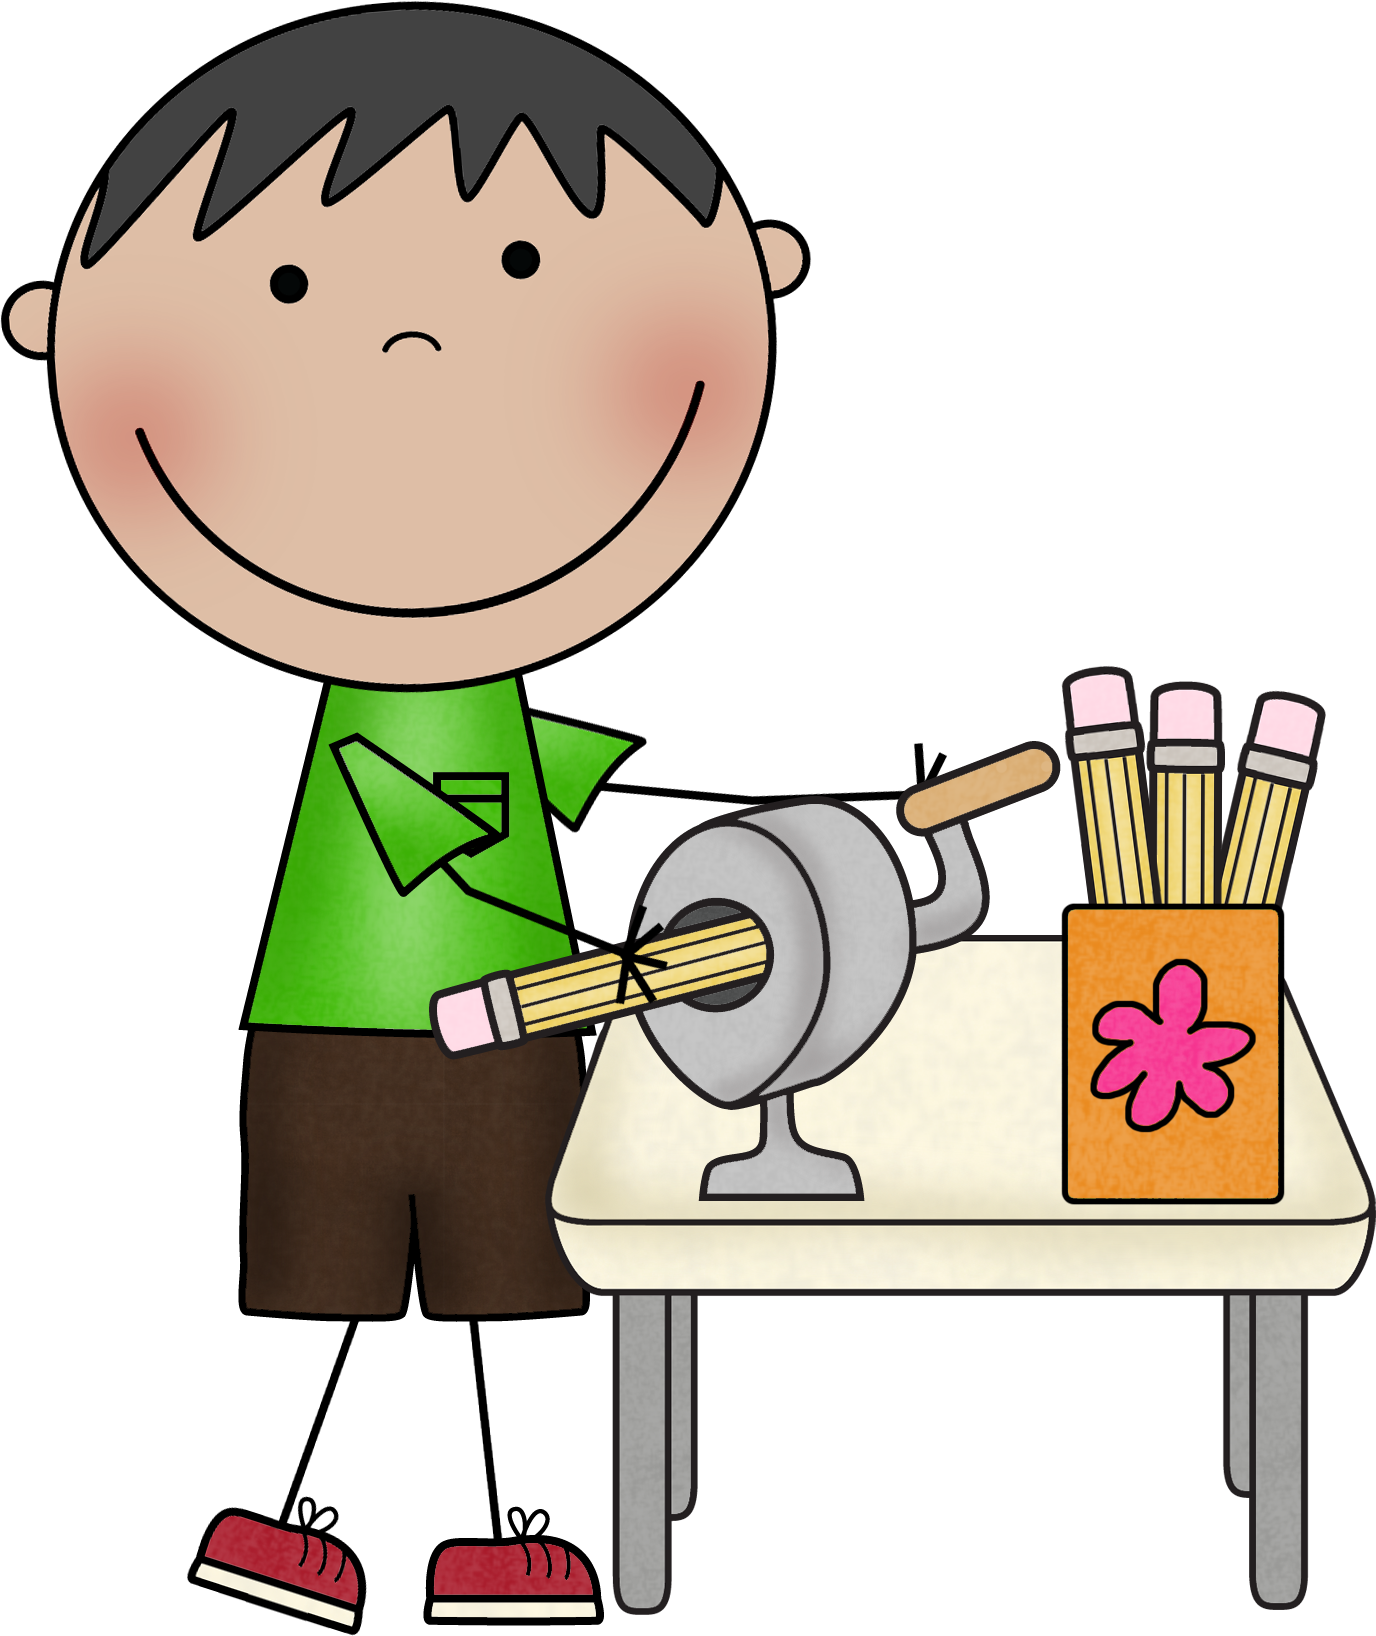 Engine clipart caboose. Library aide free on